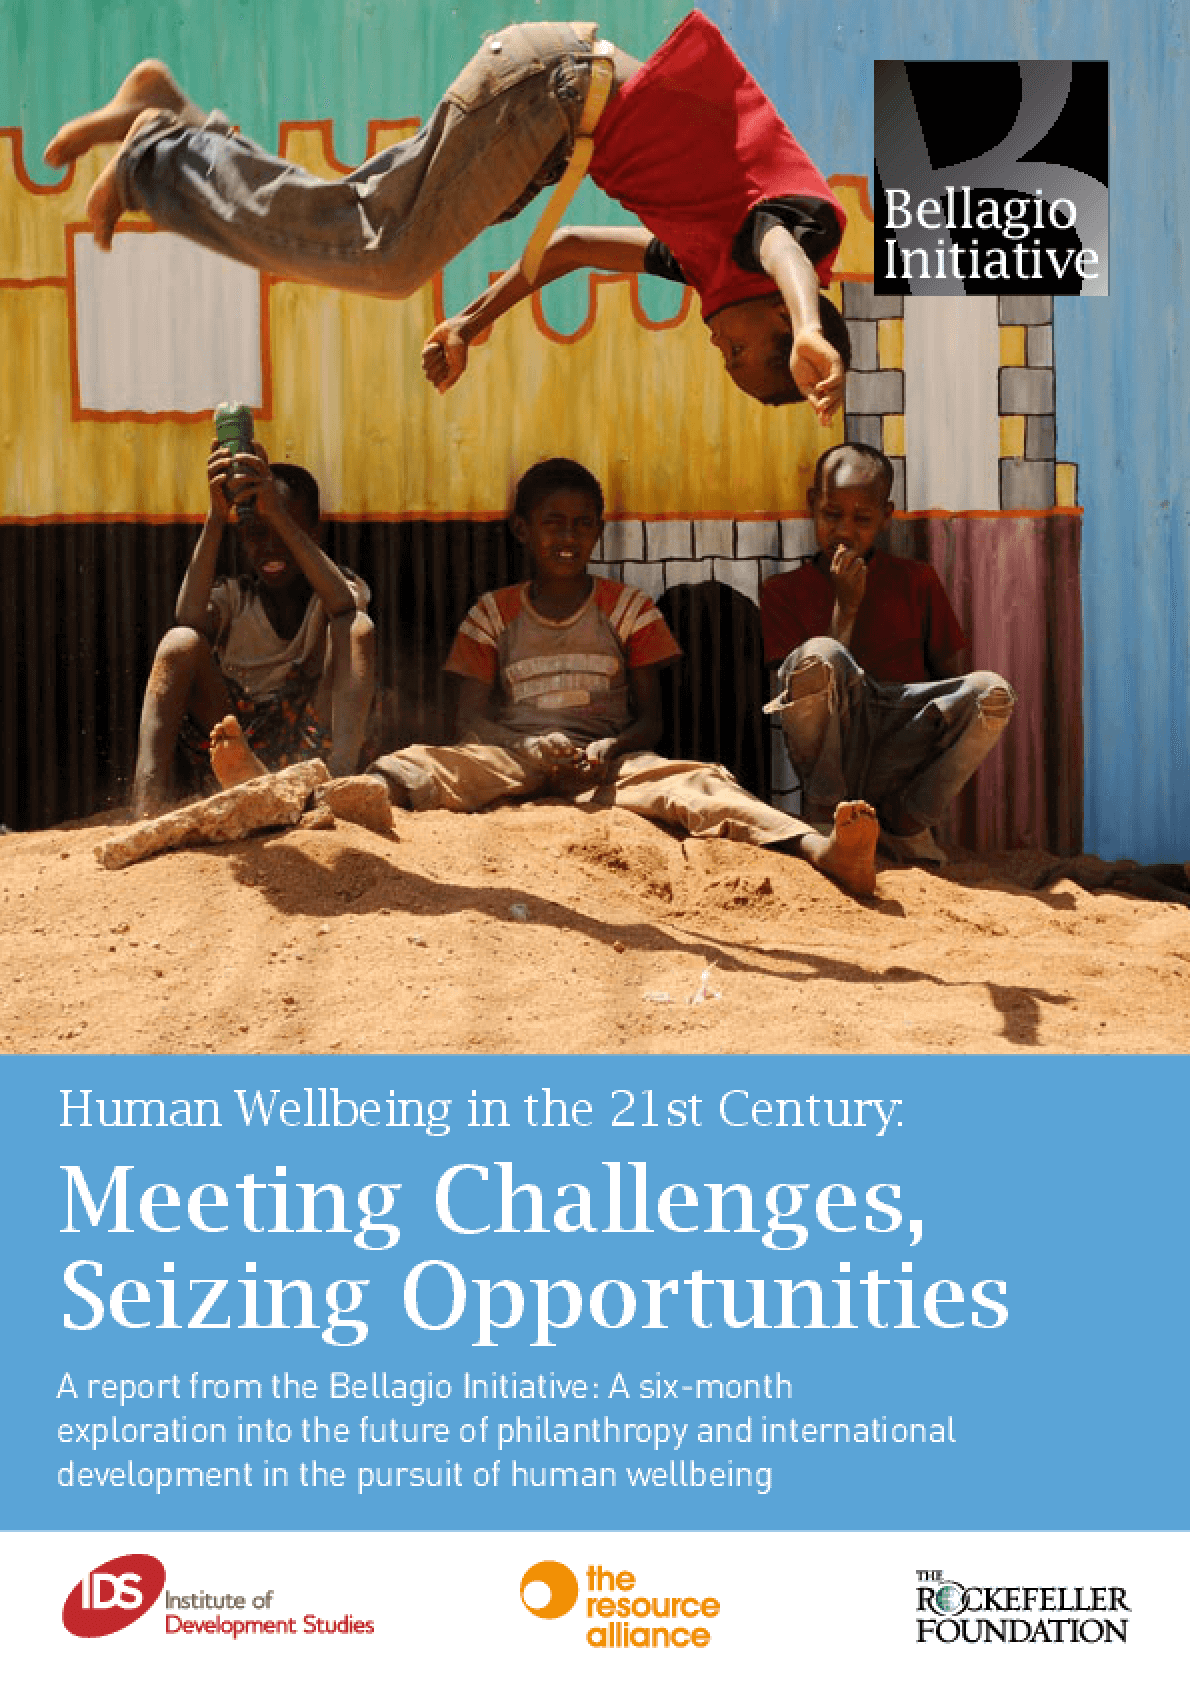 Human Wellbeing in the 21st Century: Meeting Challenges, Seizing Opportunities